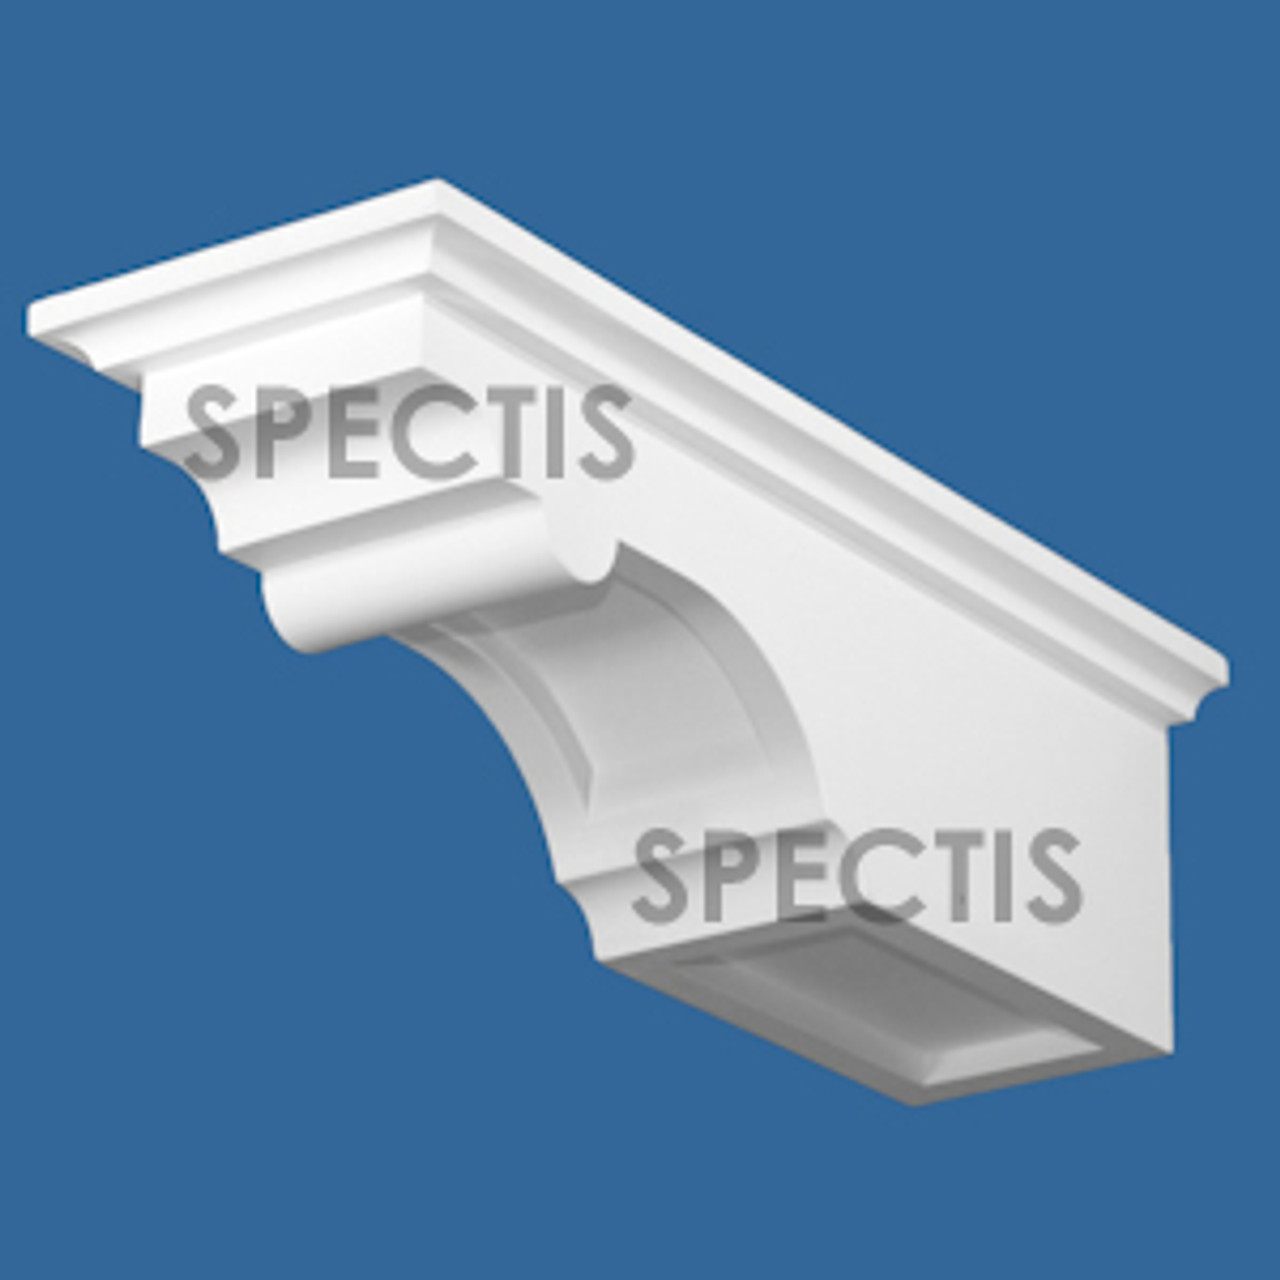 "BL3044 Spectis Eave Block or Bracket 5.63""W x 15.88""H x 5.13"" Projection"